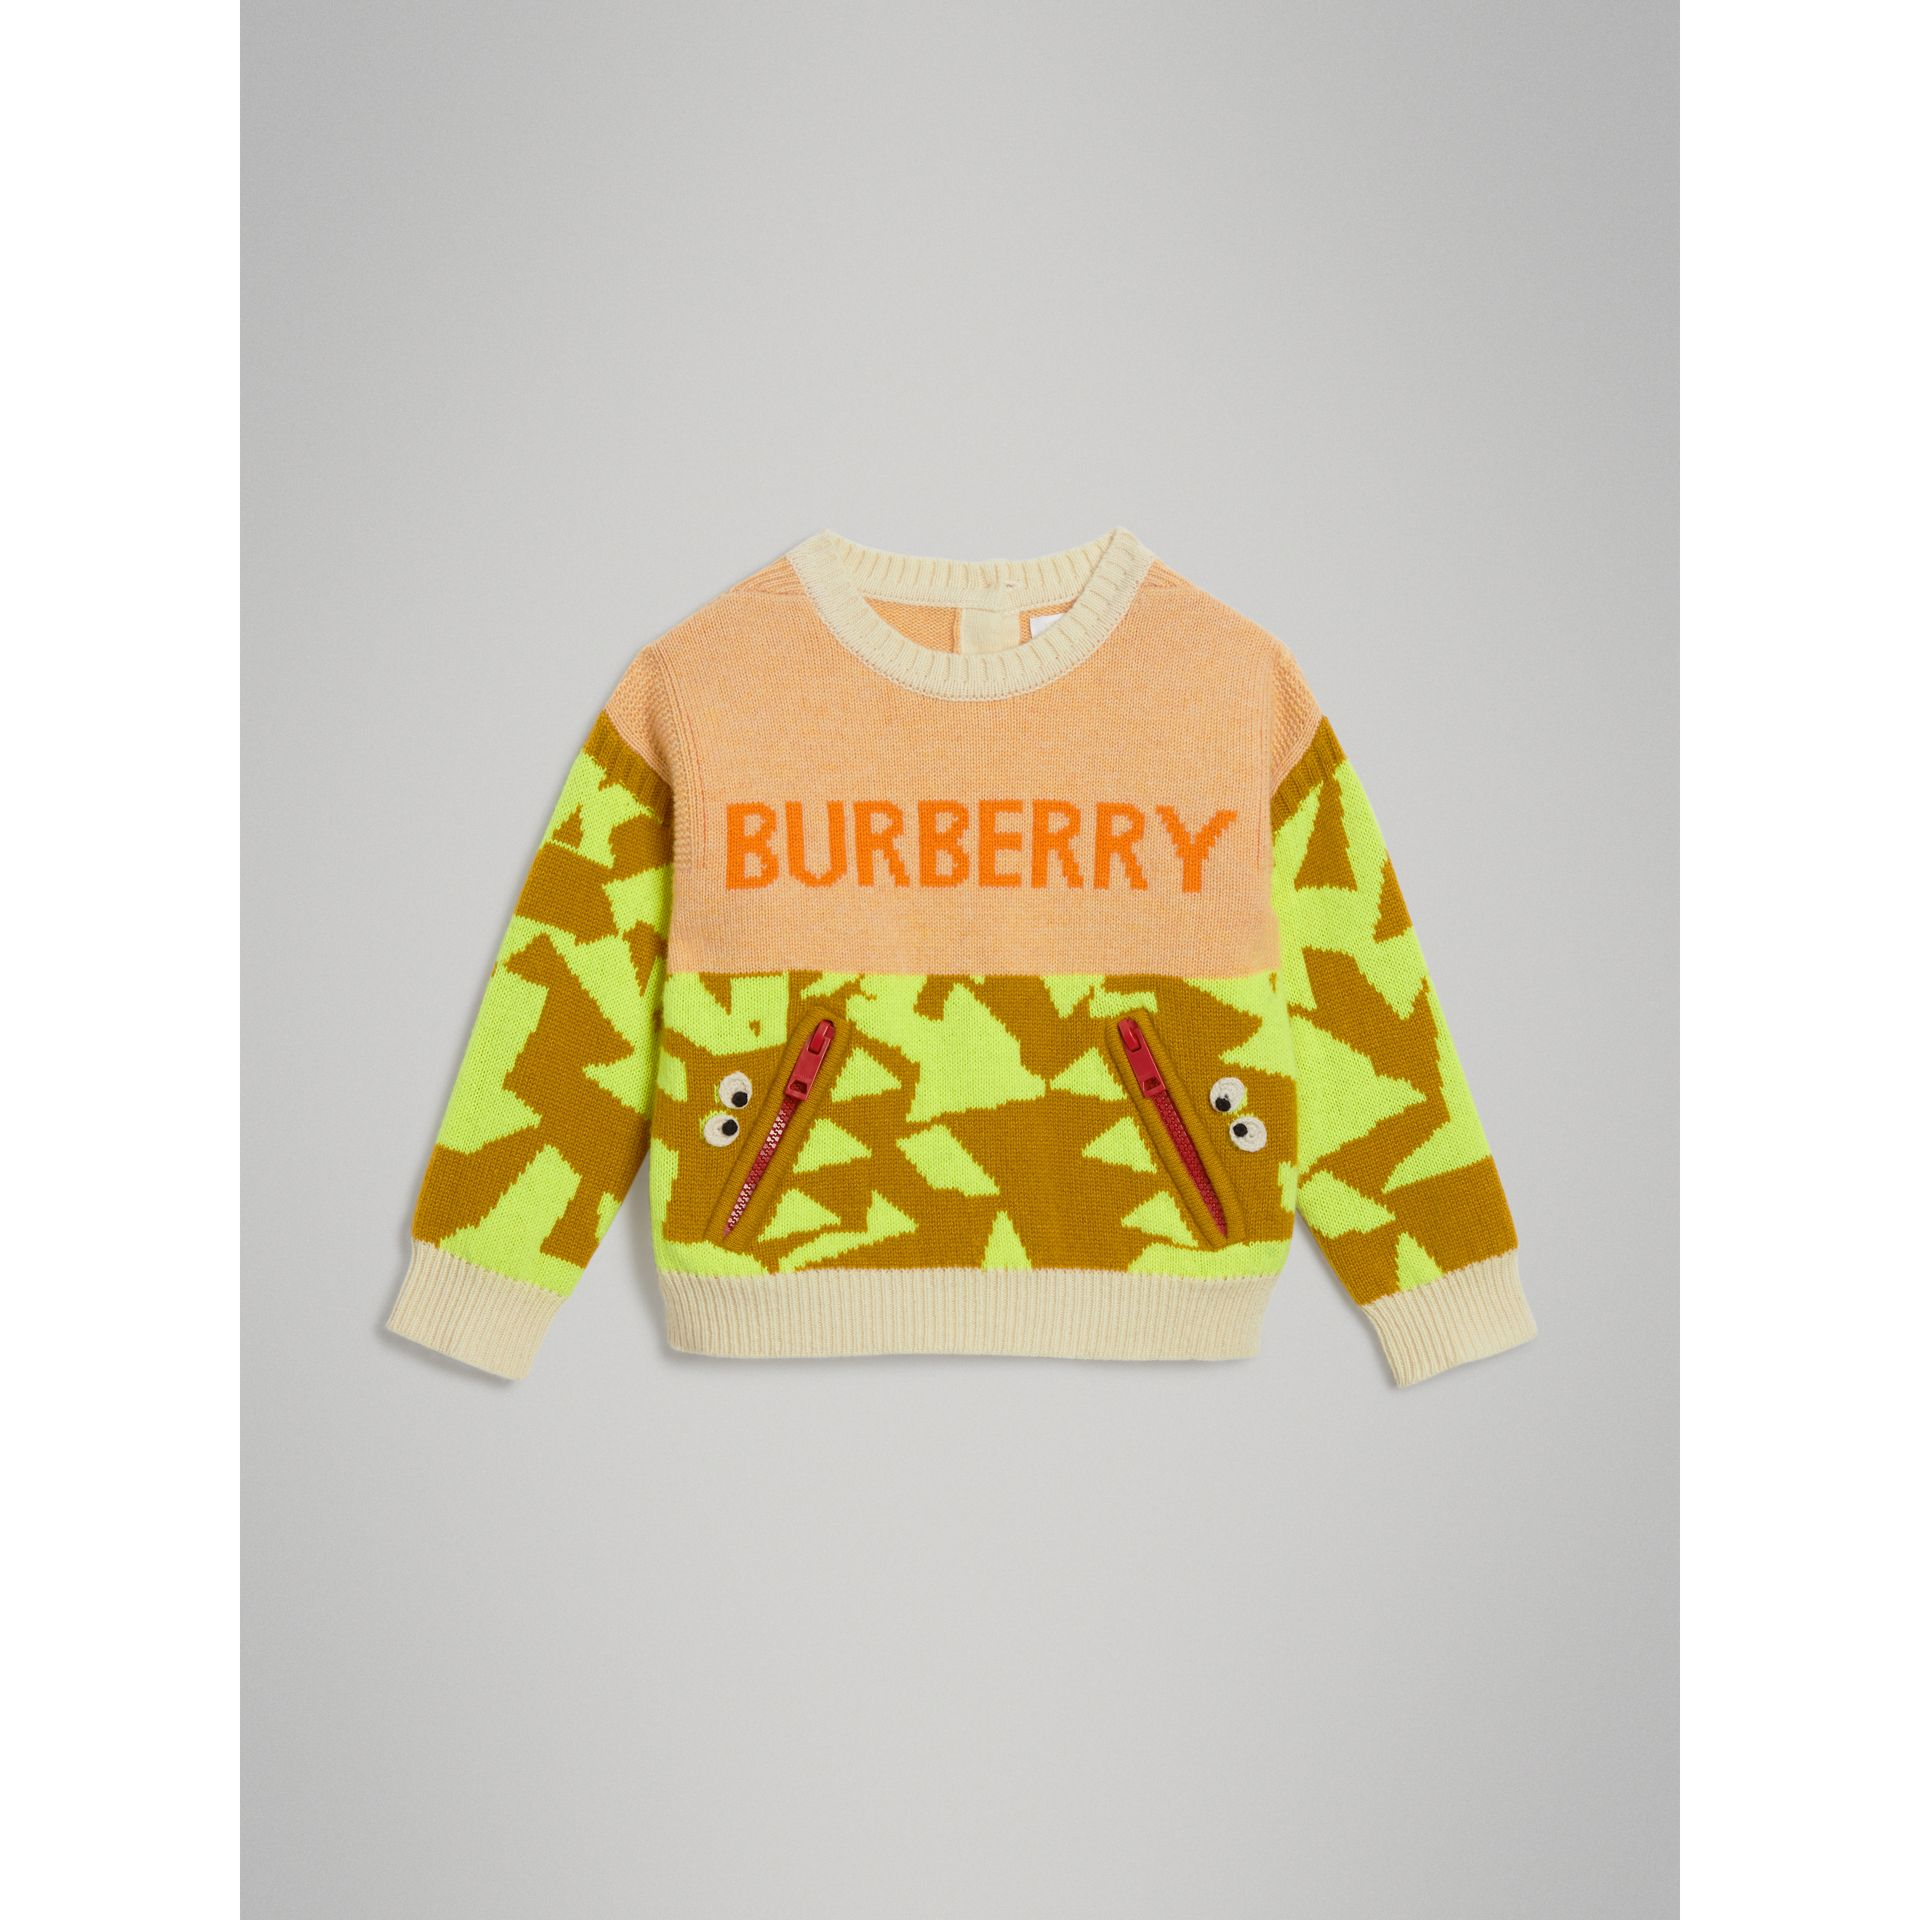 Kaschmirpullover mit Monstermotiv in Intarsienoptik (Orange) | Burberry - Galerie-Bild 0